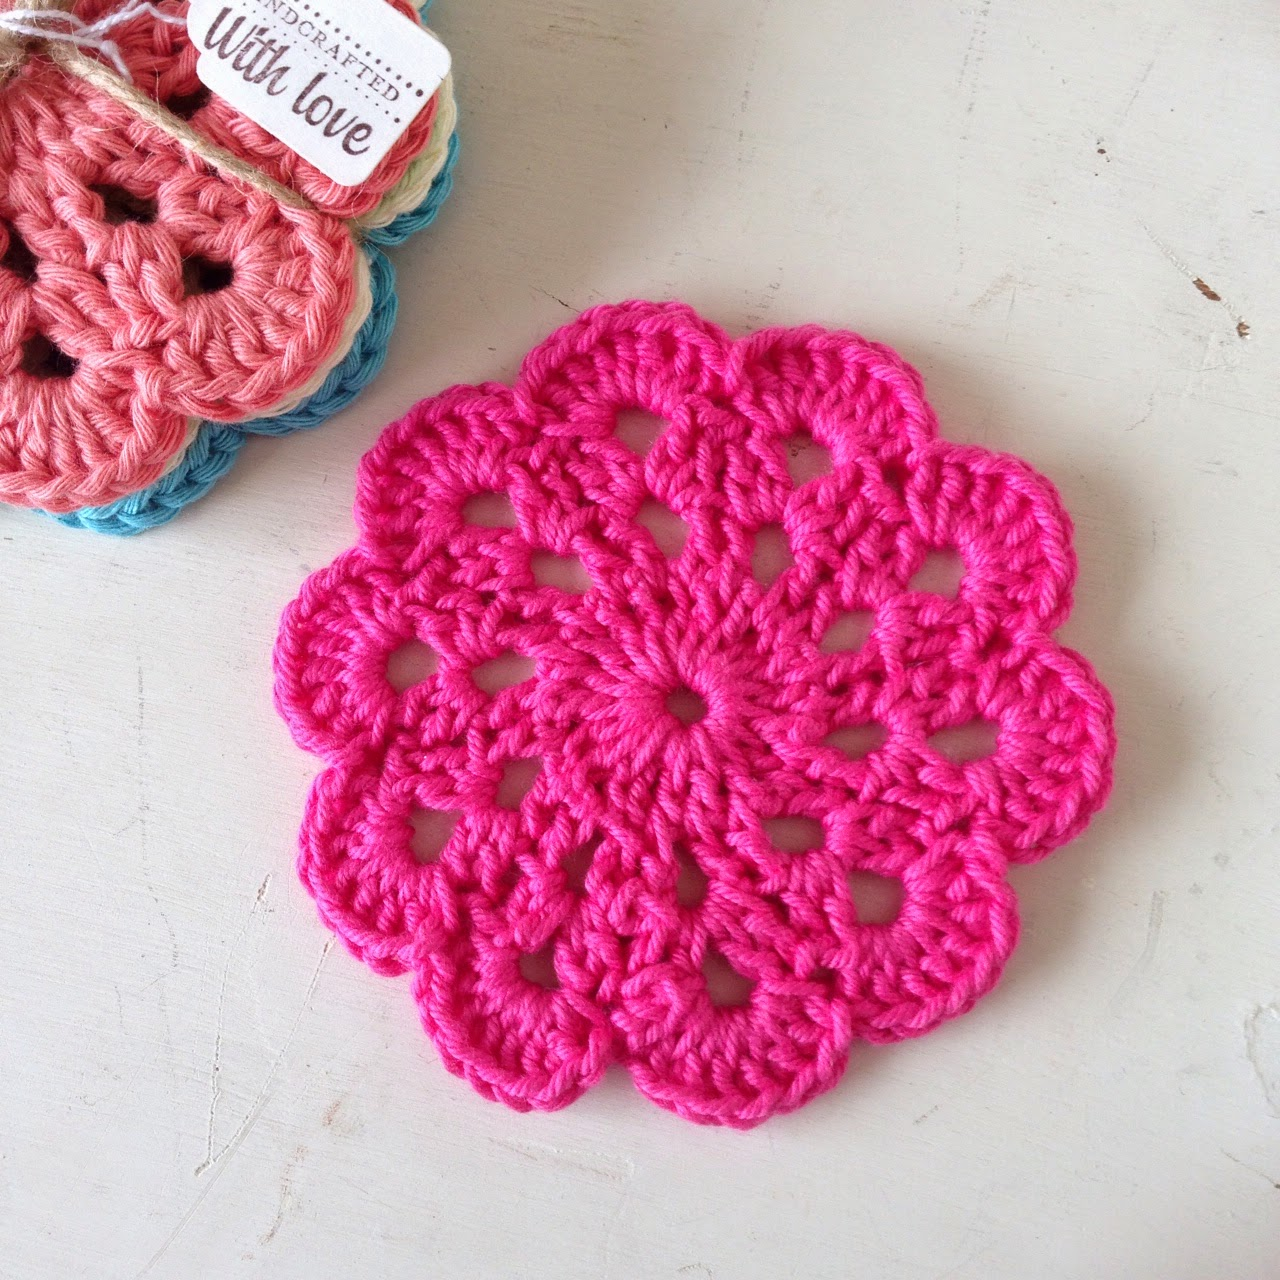 A World of Imagination: Mixing It Up......some crochet coasters.